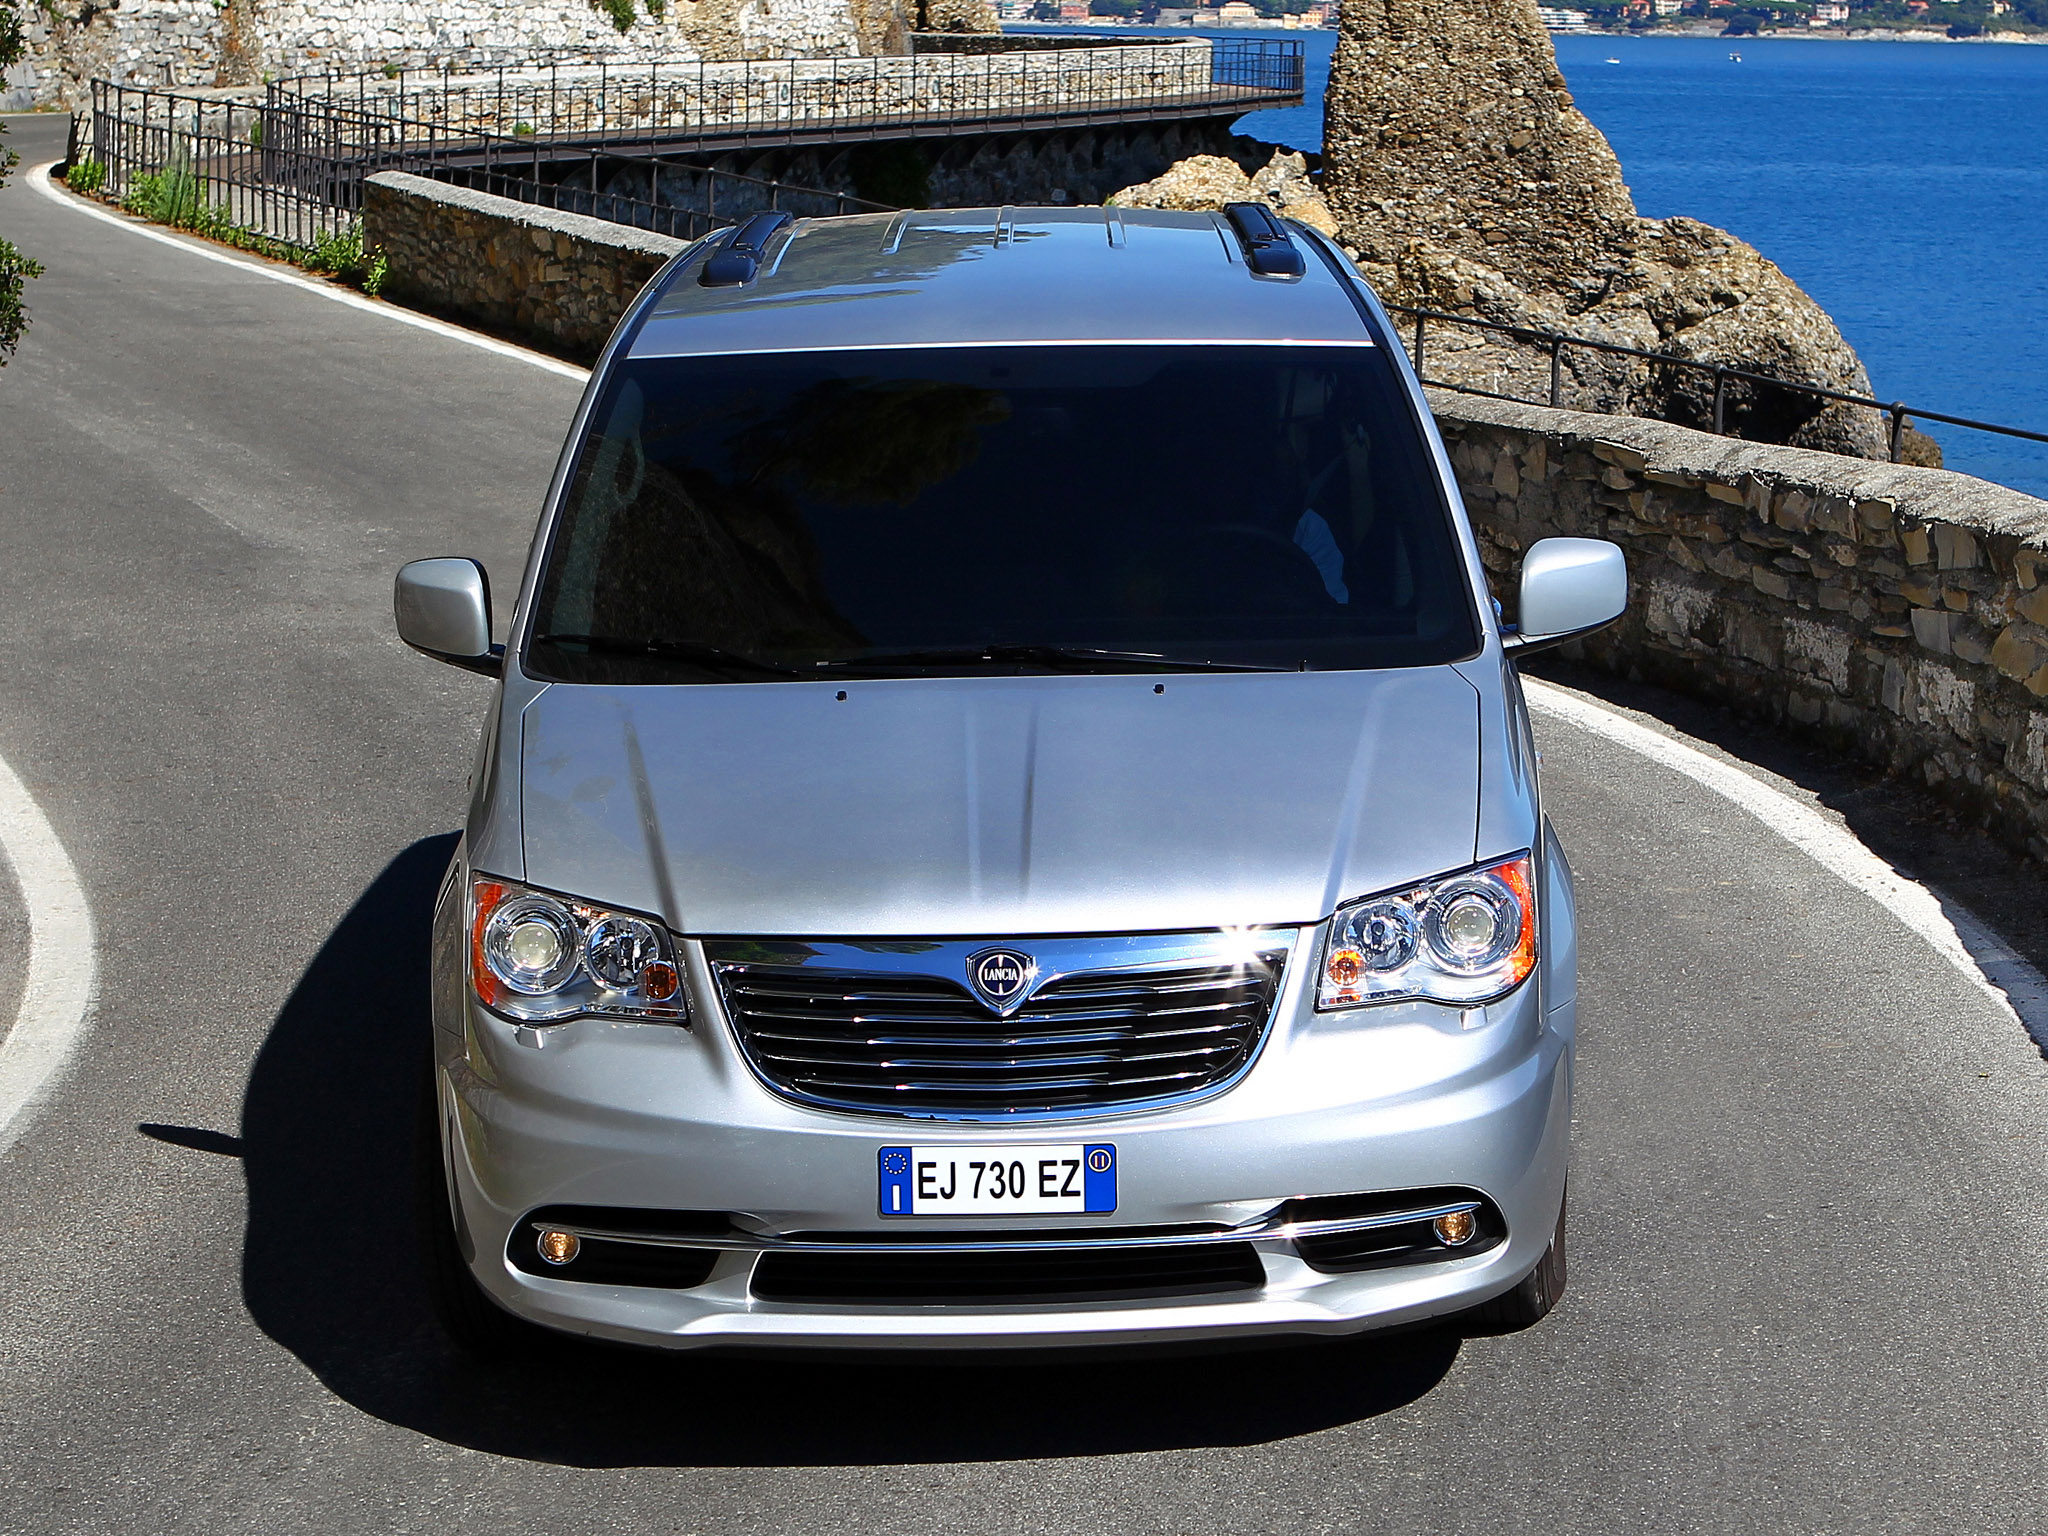 lancia grand voyager 2011 lancia grand voyager 2011 photo 09 car in pictures car photo gallery. Black Bedroom Furniture Sets. Home Design Ideas